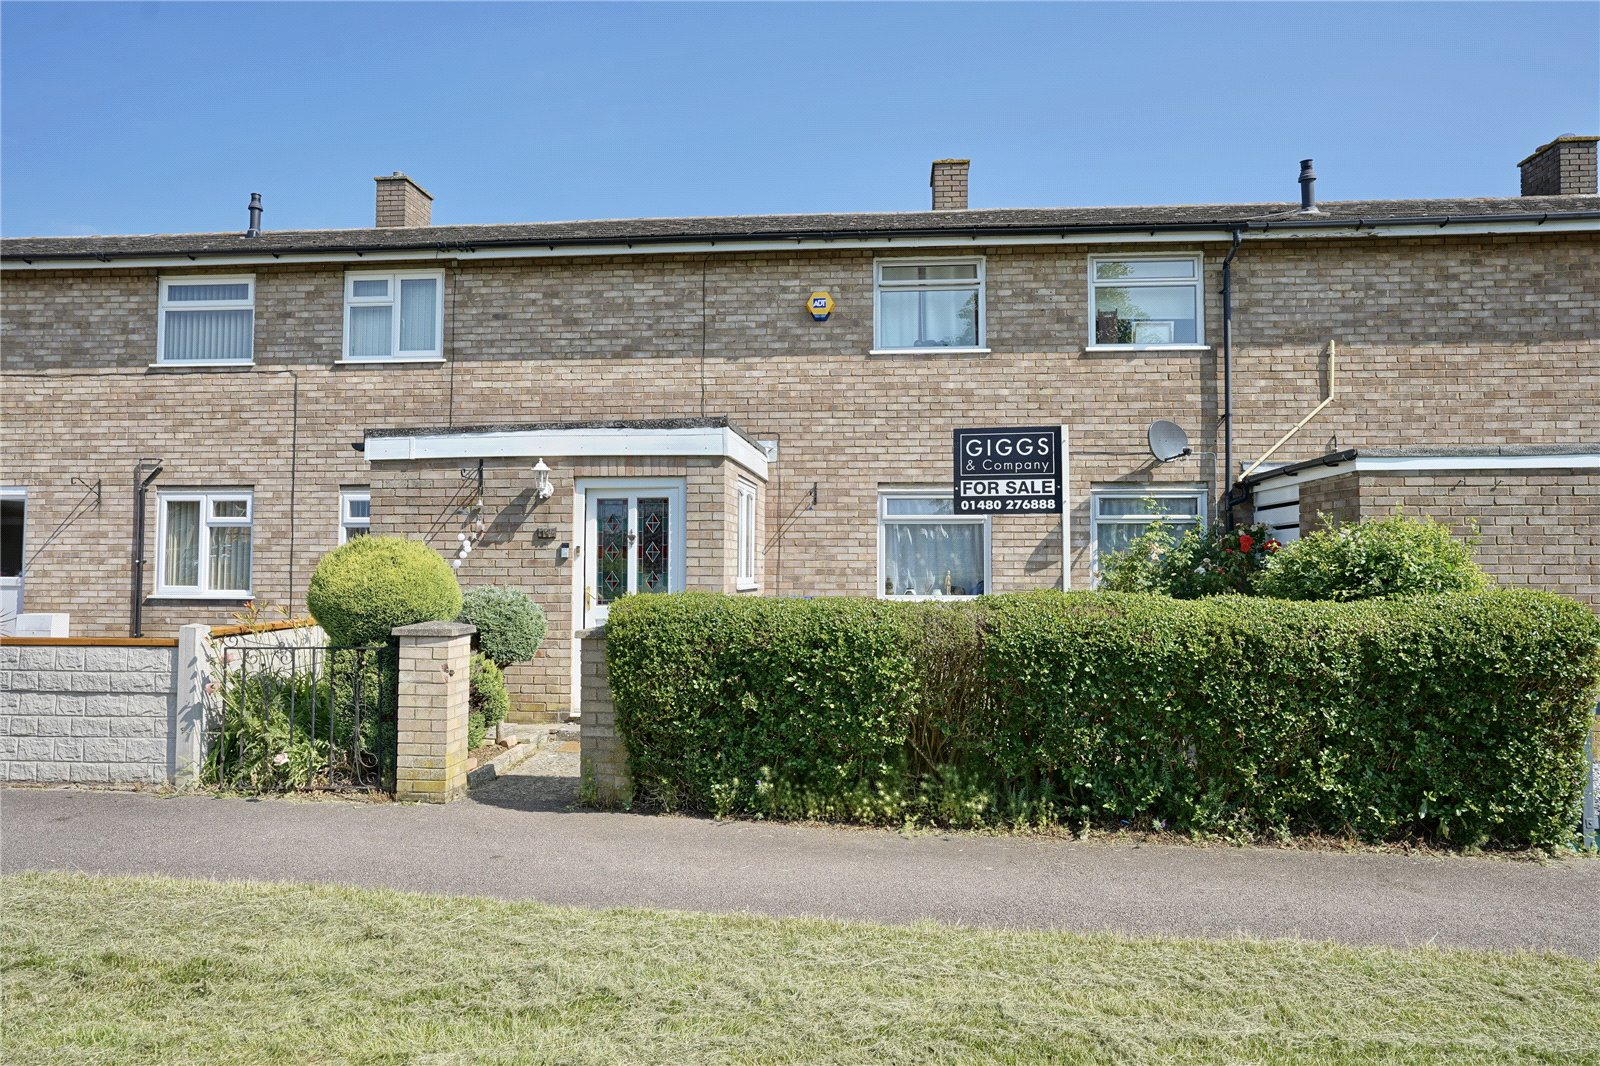 3 bed house for sale in Kings Road, Eaton Socon - Property Image 1